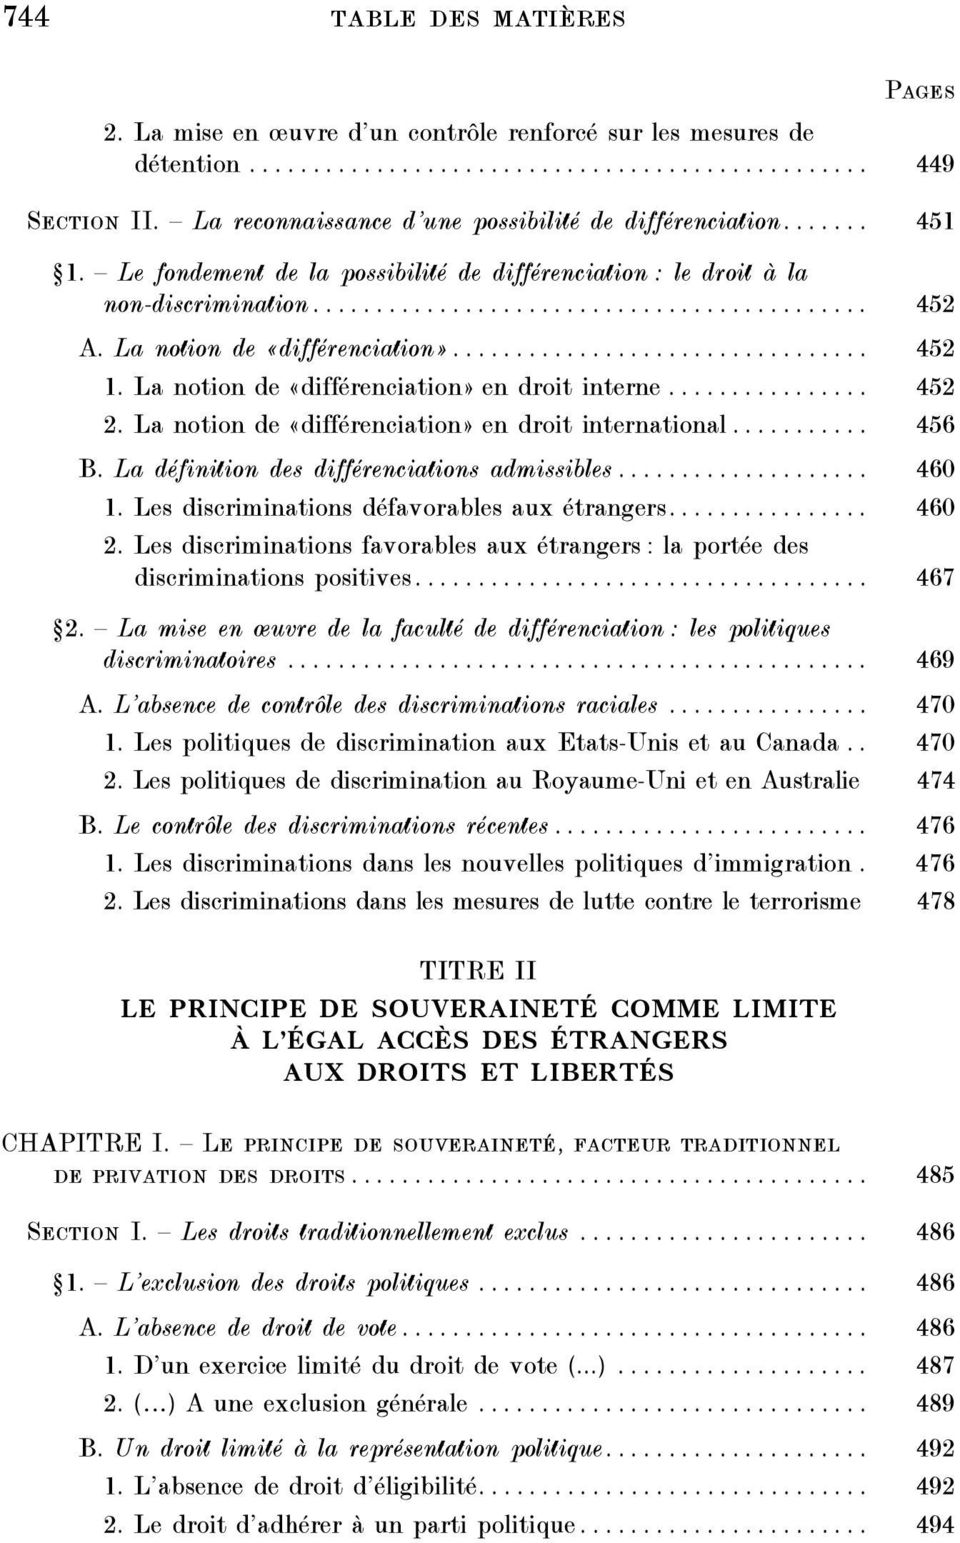 La notion de «différenciation»................................. 452 1. La notion de «différenciation» en droit interne................ 452 2. La notion de «différenciation» en droit international.